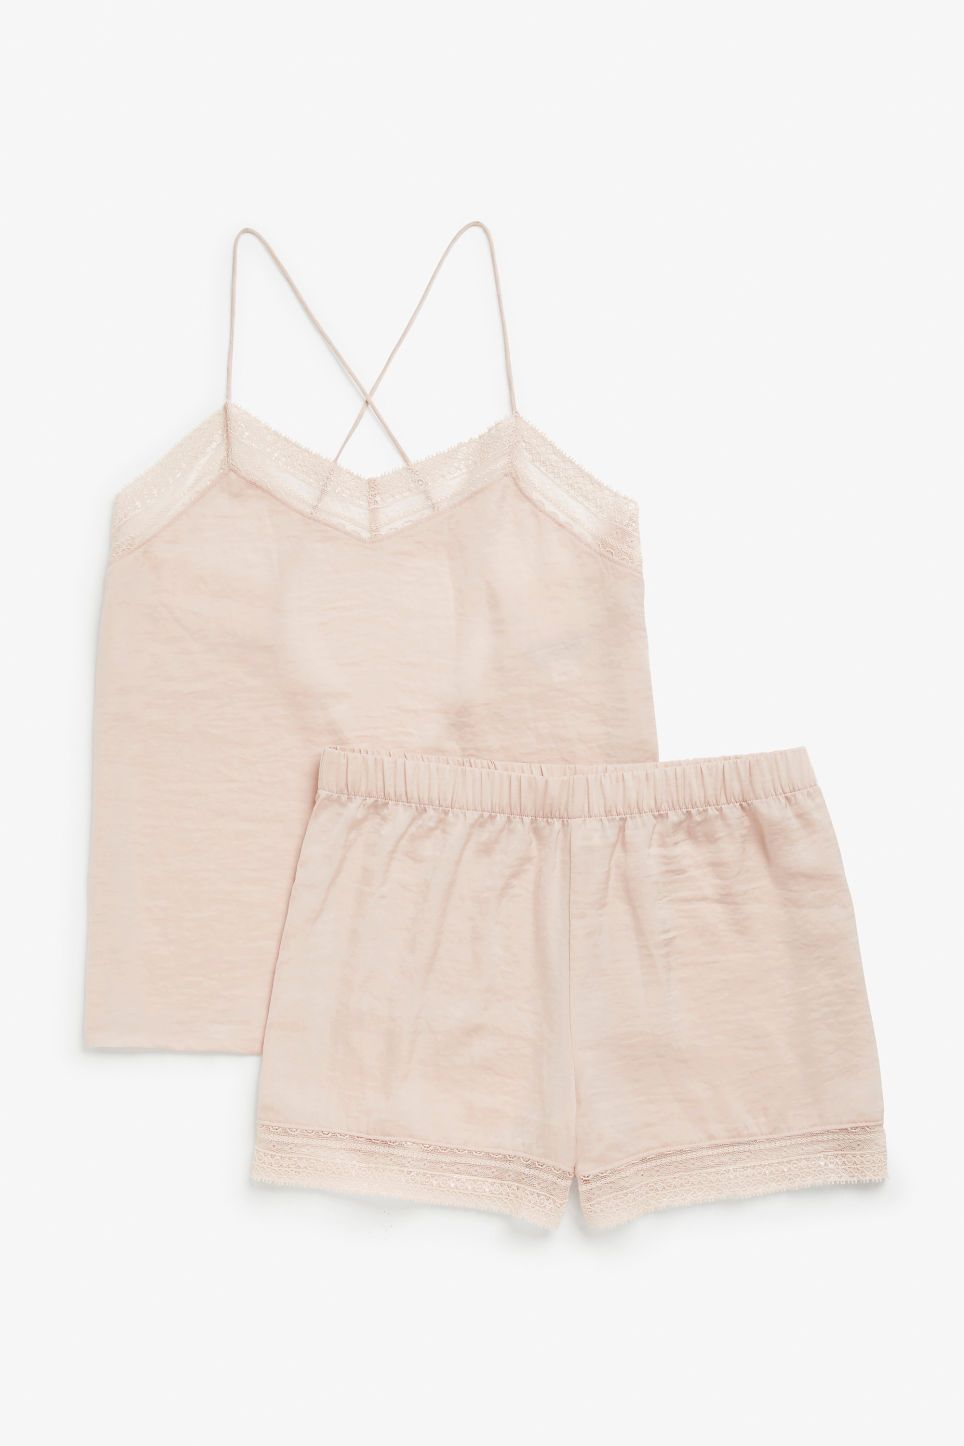 41996c40562 This silky-soft pyjama set with spaghetti straps is a dream come tru. The  top is laced in the front and the shorts are laced at the bottom.